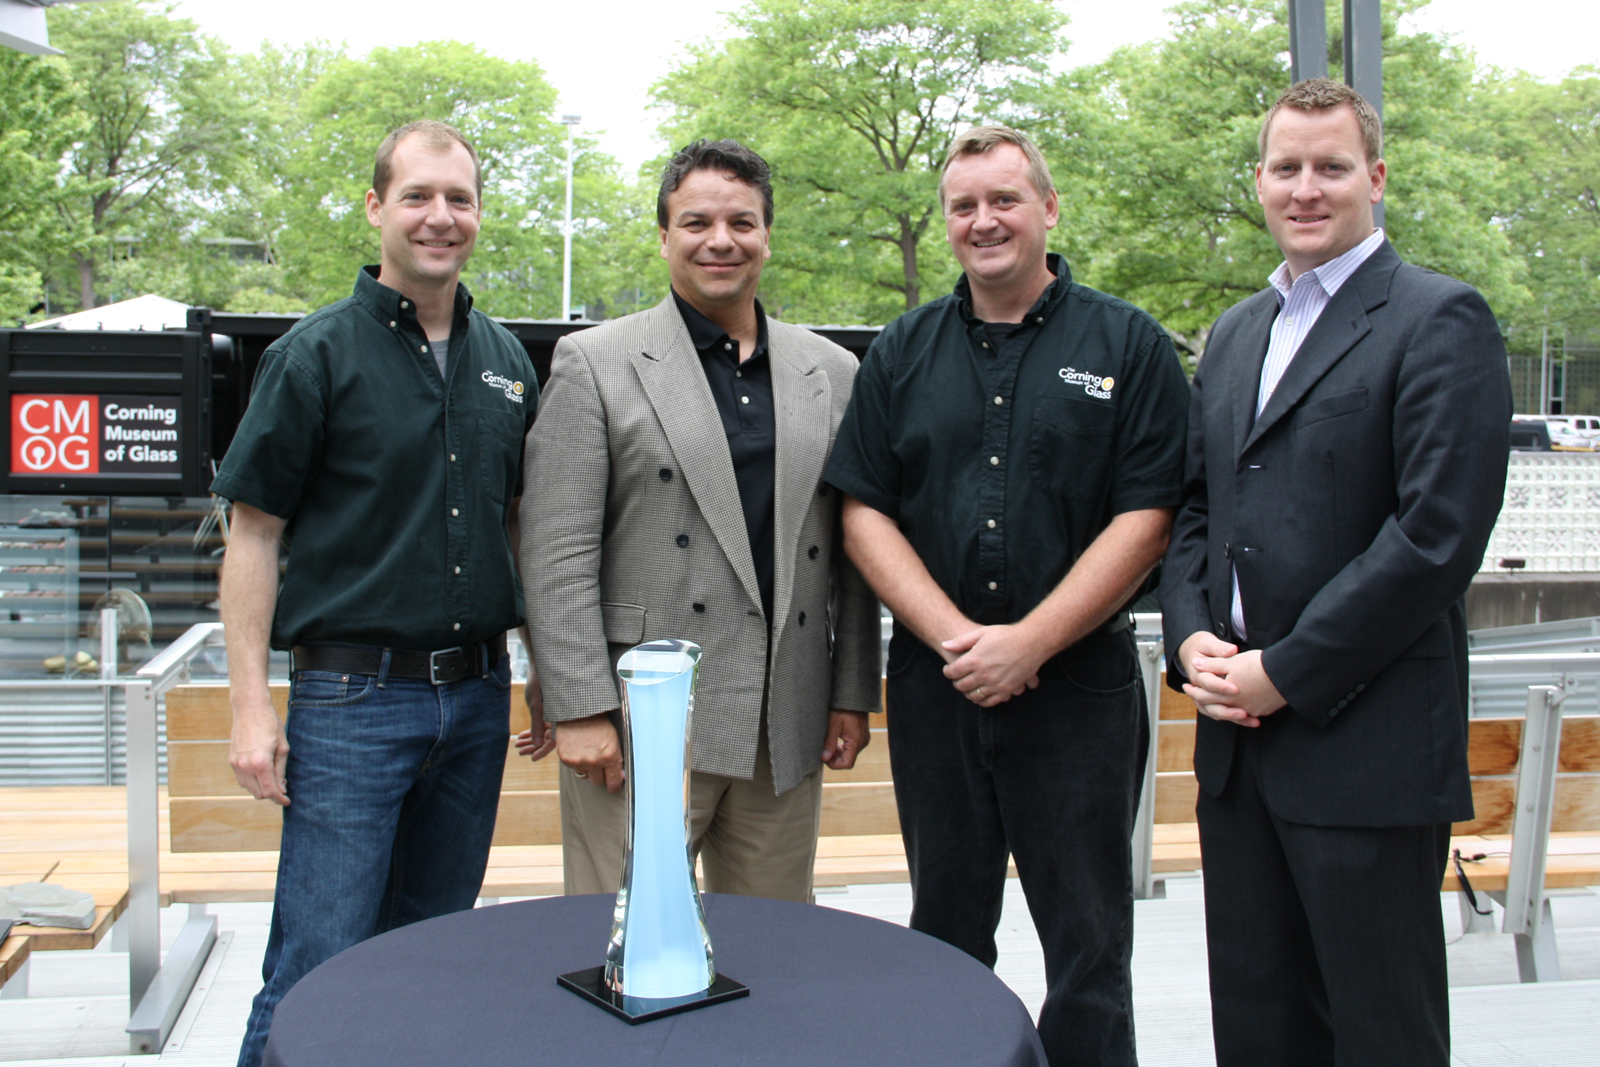 Eric Meek, Michael Printup, George Kennard, and Ryan Mosher at the unveiling of the NASCAR Sprint Cup trophy